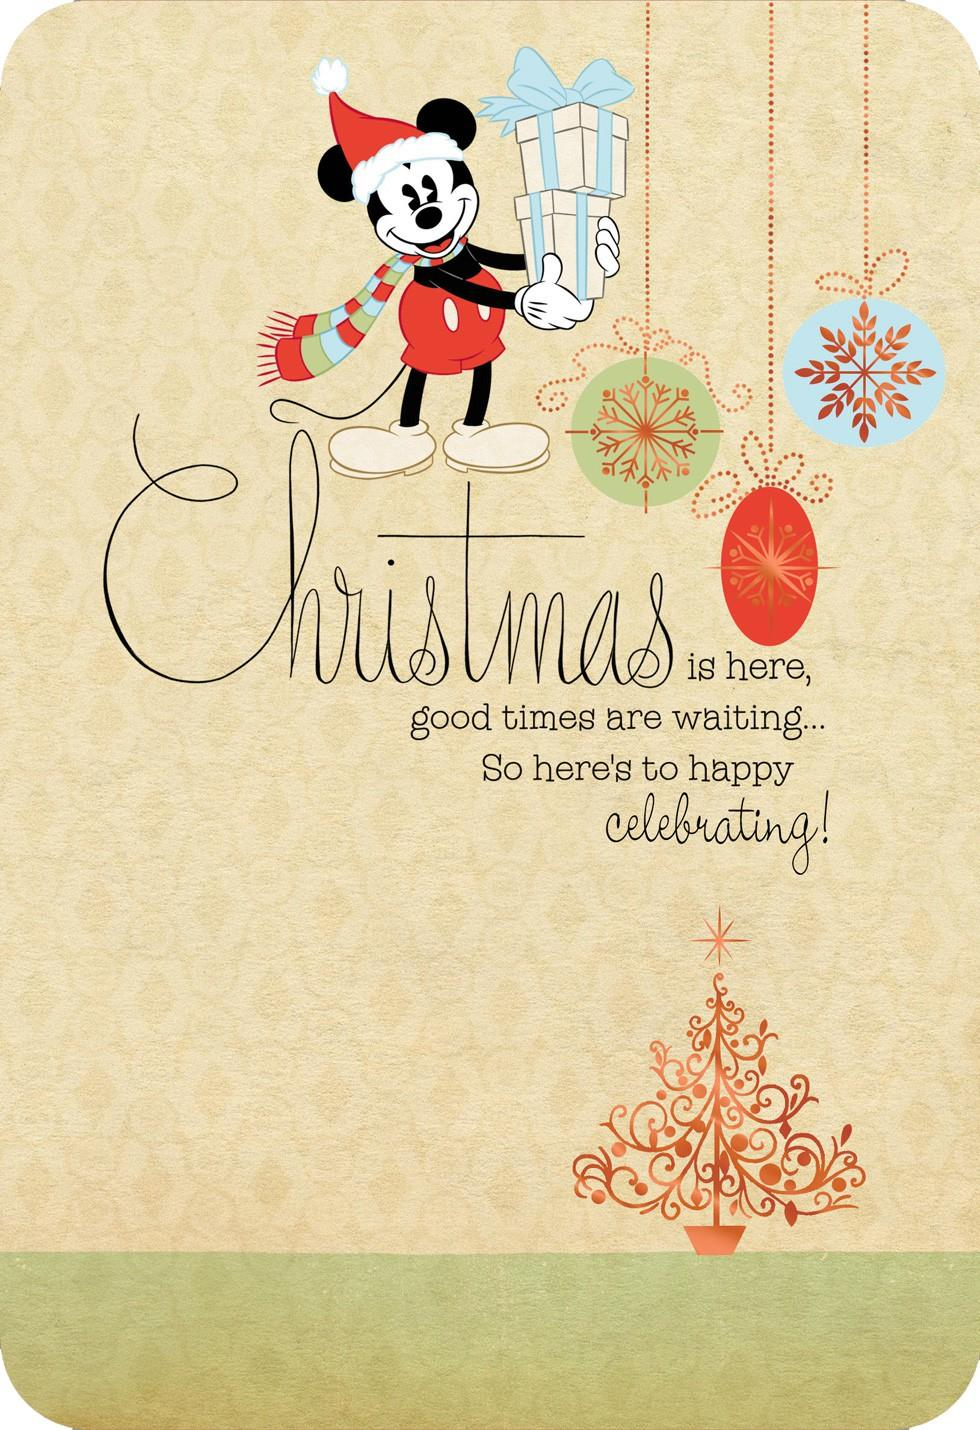 Disney Happy Celebrating Christmas Card Greeting Cards